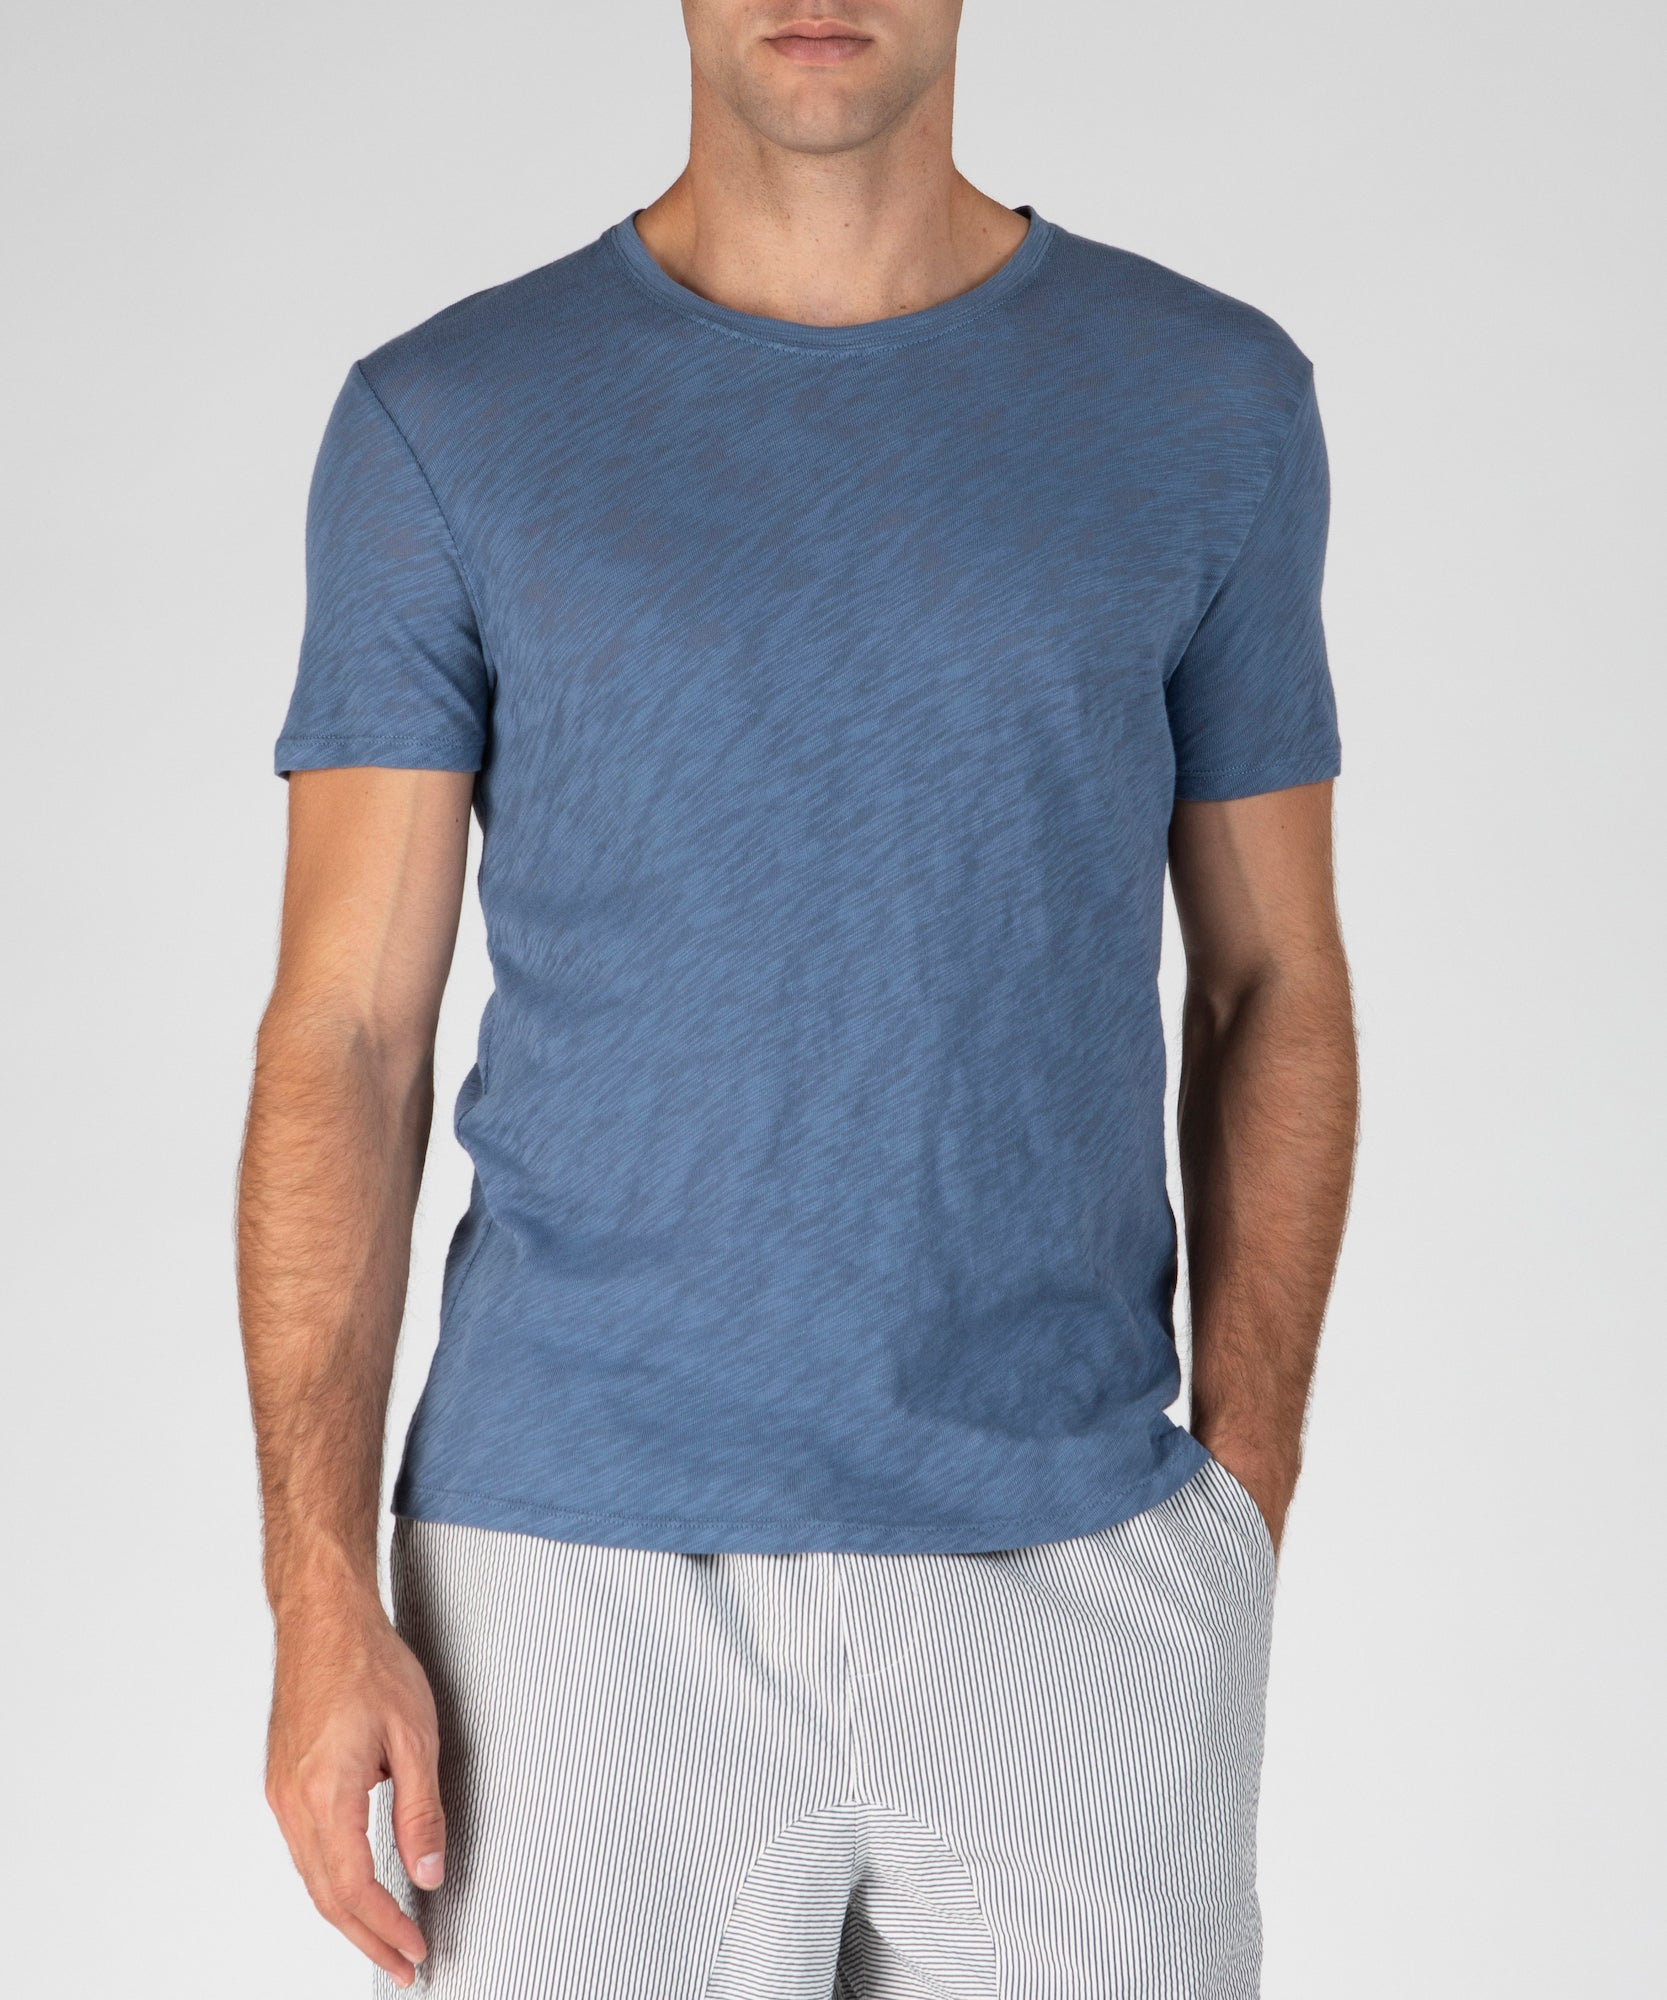 Harbour Blue Slub Jersey Crew Neck Tee - Men's Cotton Short Sleeve Tee by ATM Anthony Thomas Melillo